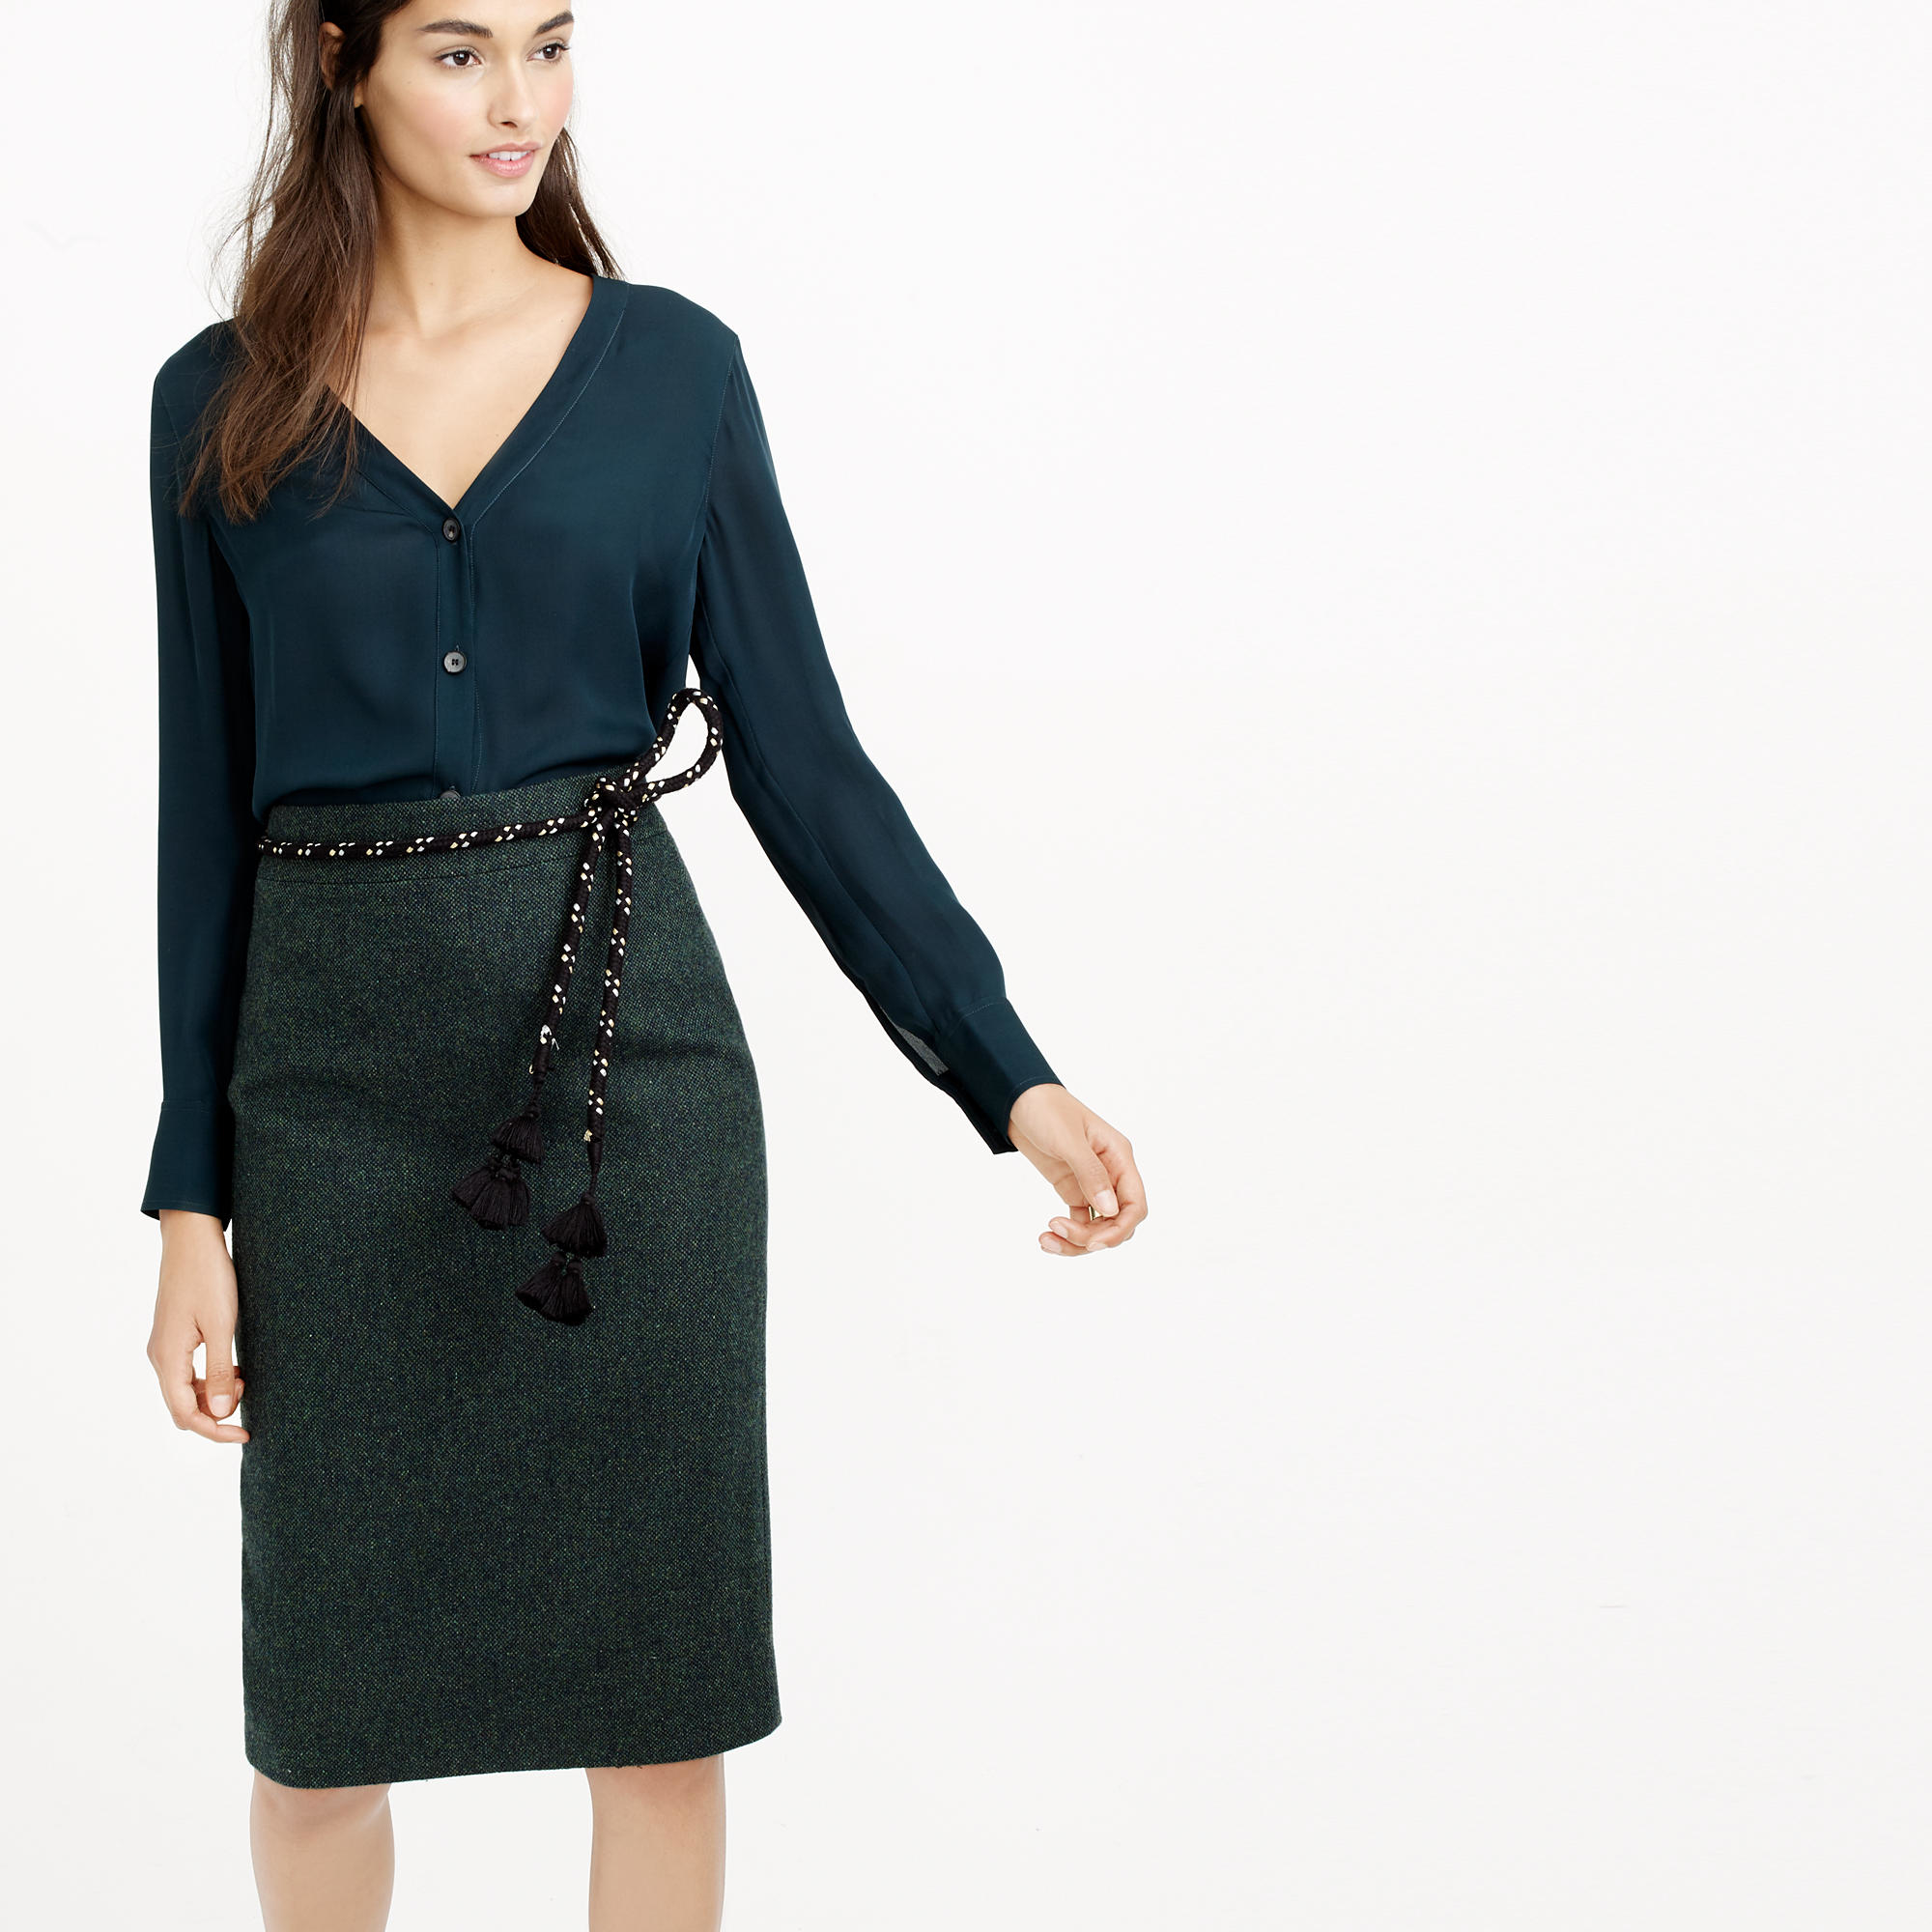 j crew no 2 pencil skirt in donegal wool in green